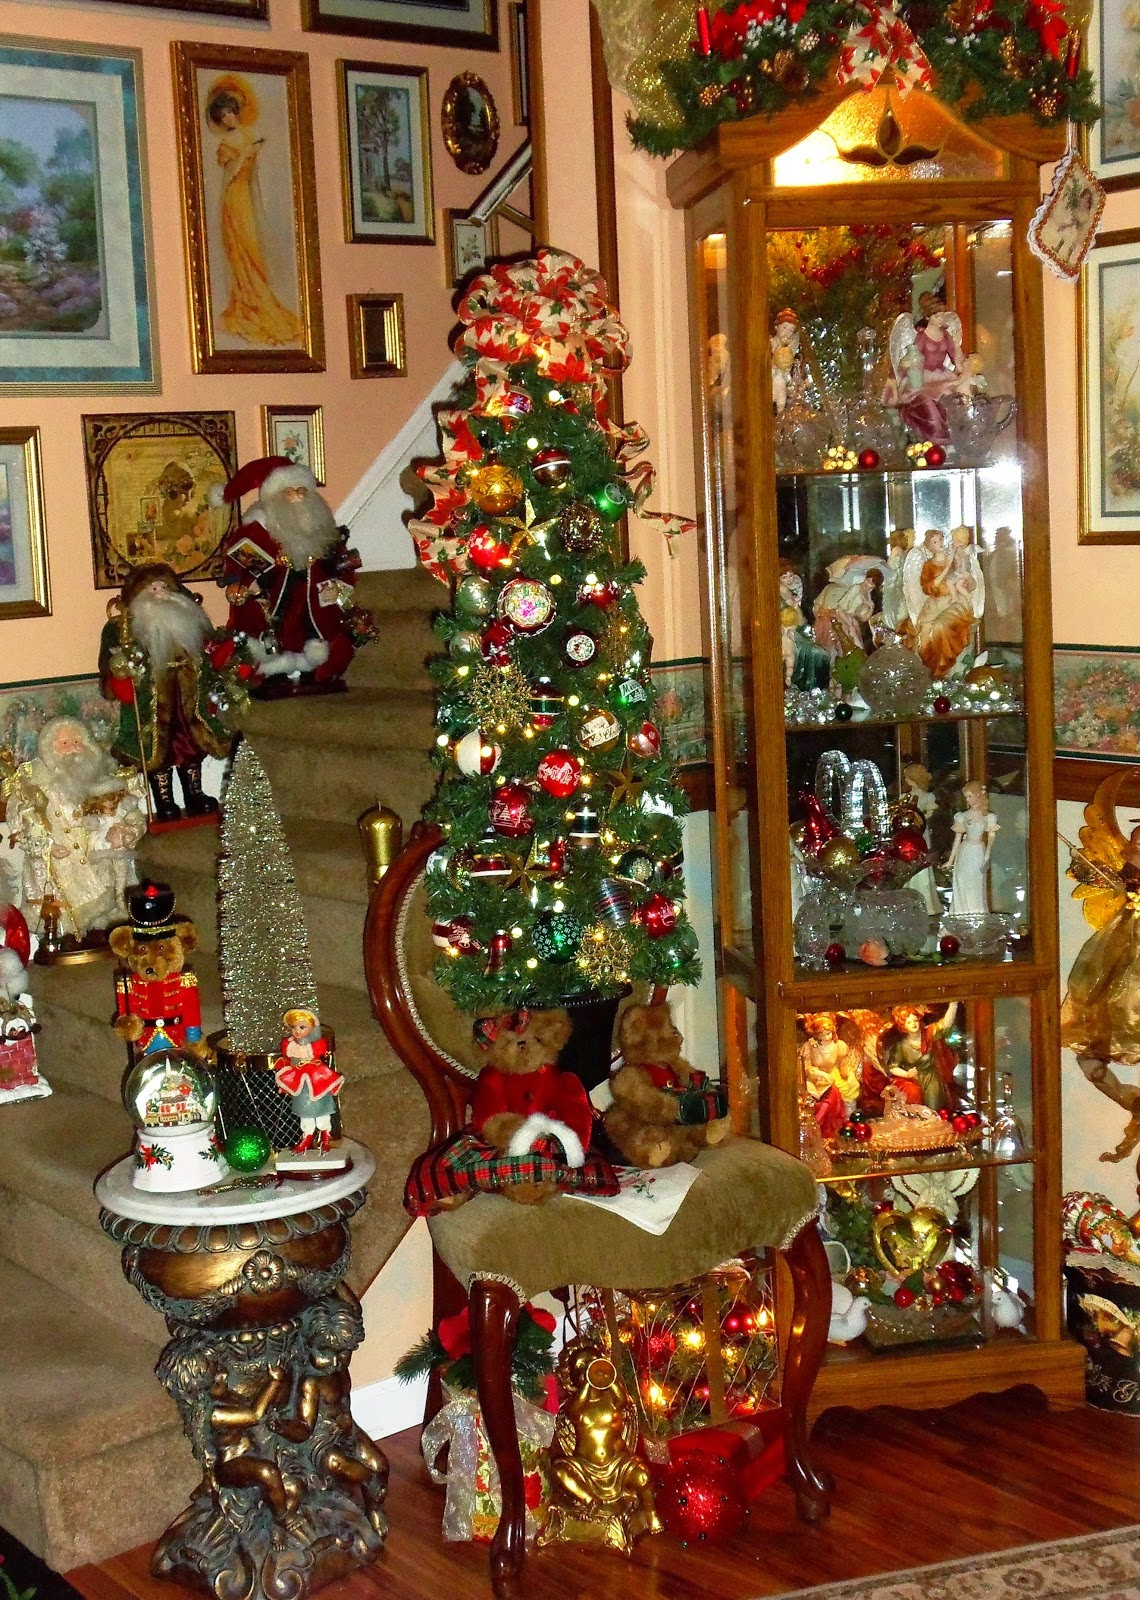 An Old Fashioned Christmas in Half of the Living Room, Part 4 ,Christmas Home Tour 2014